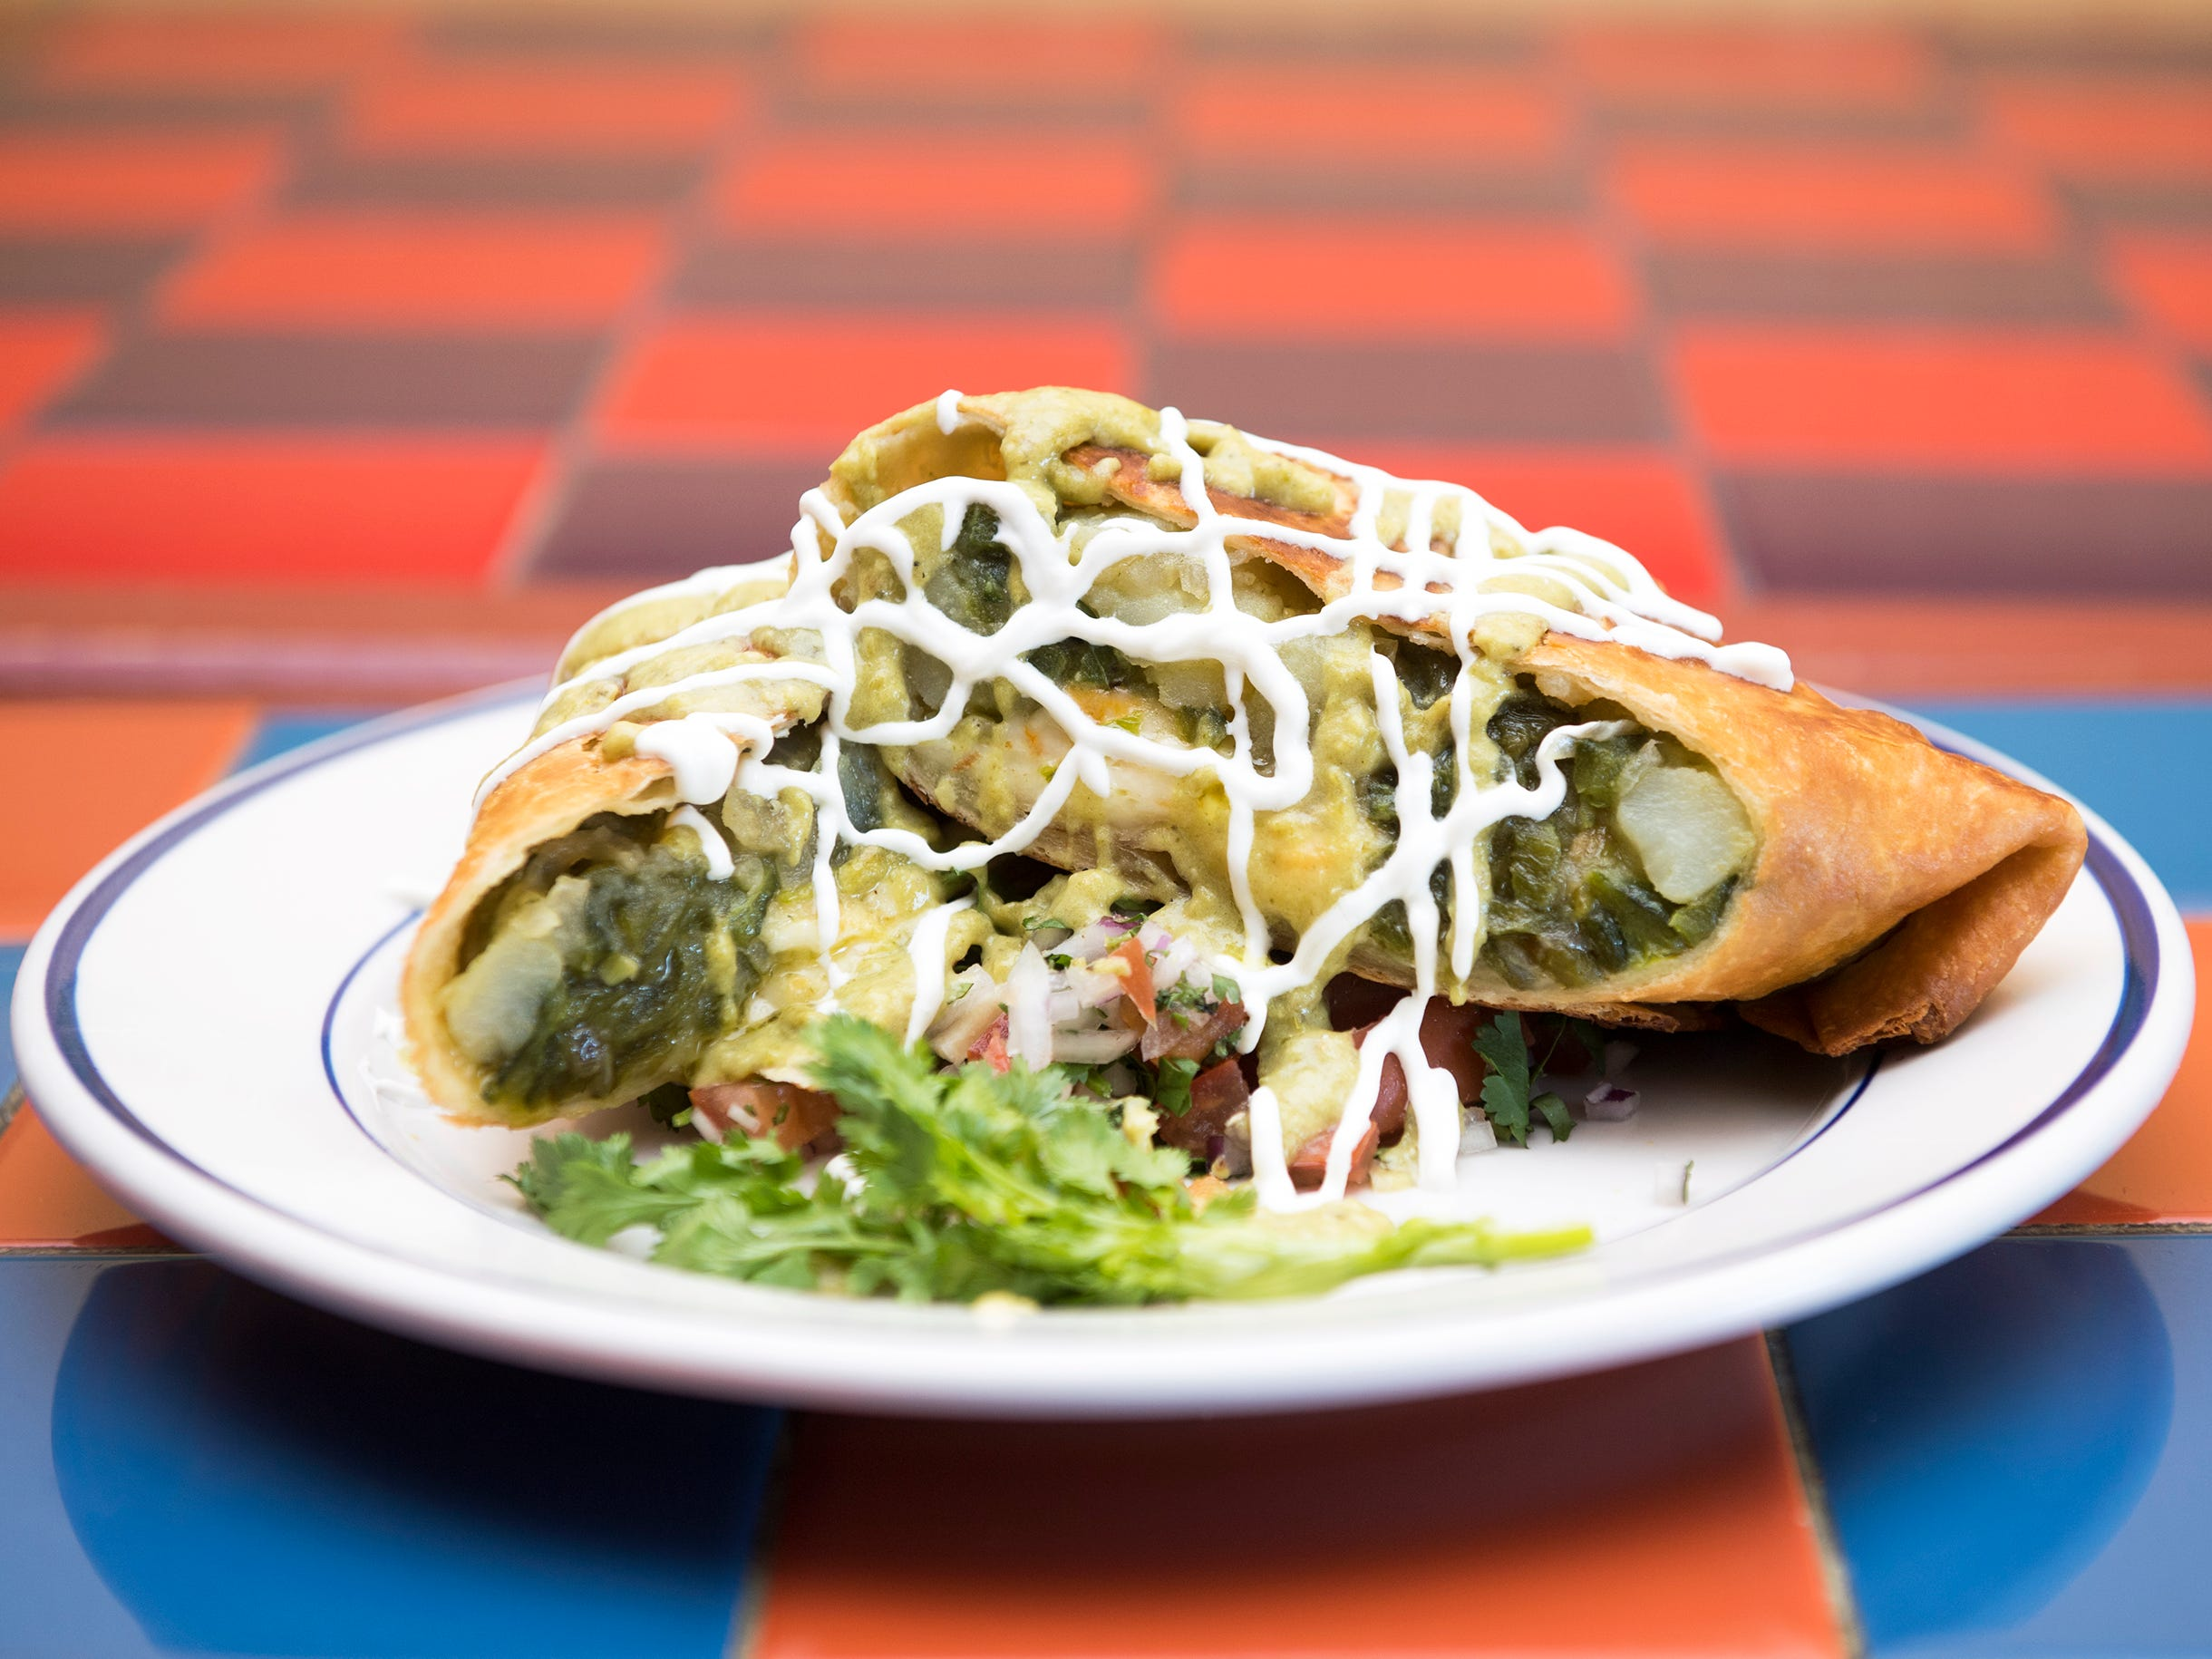 A chimichanga poblano dish with roasted poblano peppers, potatoes, onions with cheese is on the menu from La Esperanza in Lindenwold.